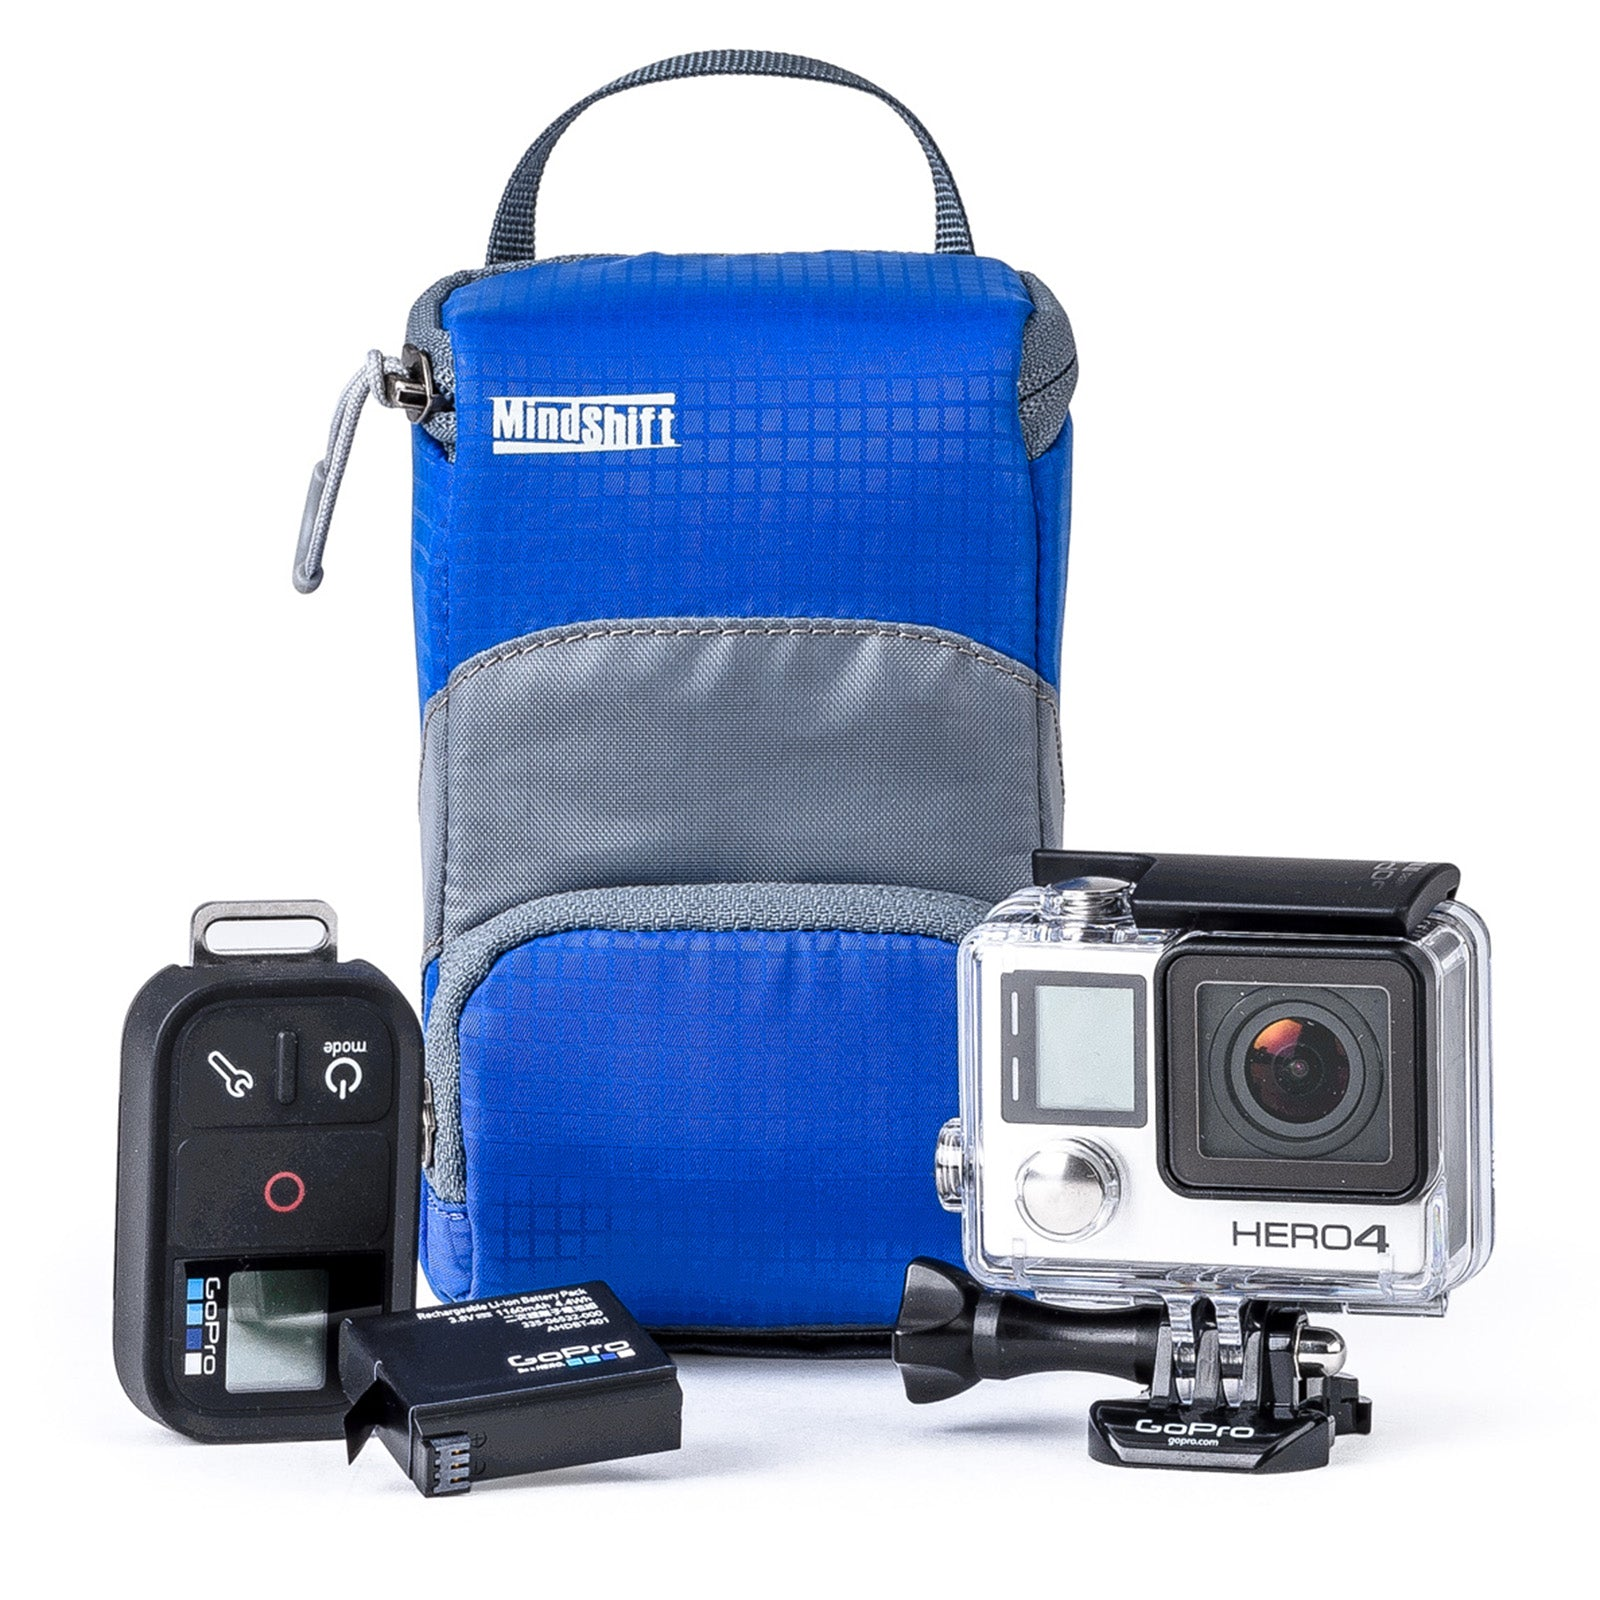 Fits 1 GoPro® or other action camera in housing with BacPac™, 2 batteries, 2 memory cards and remote.